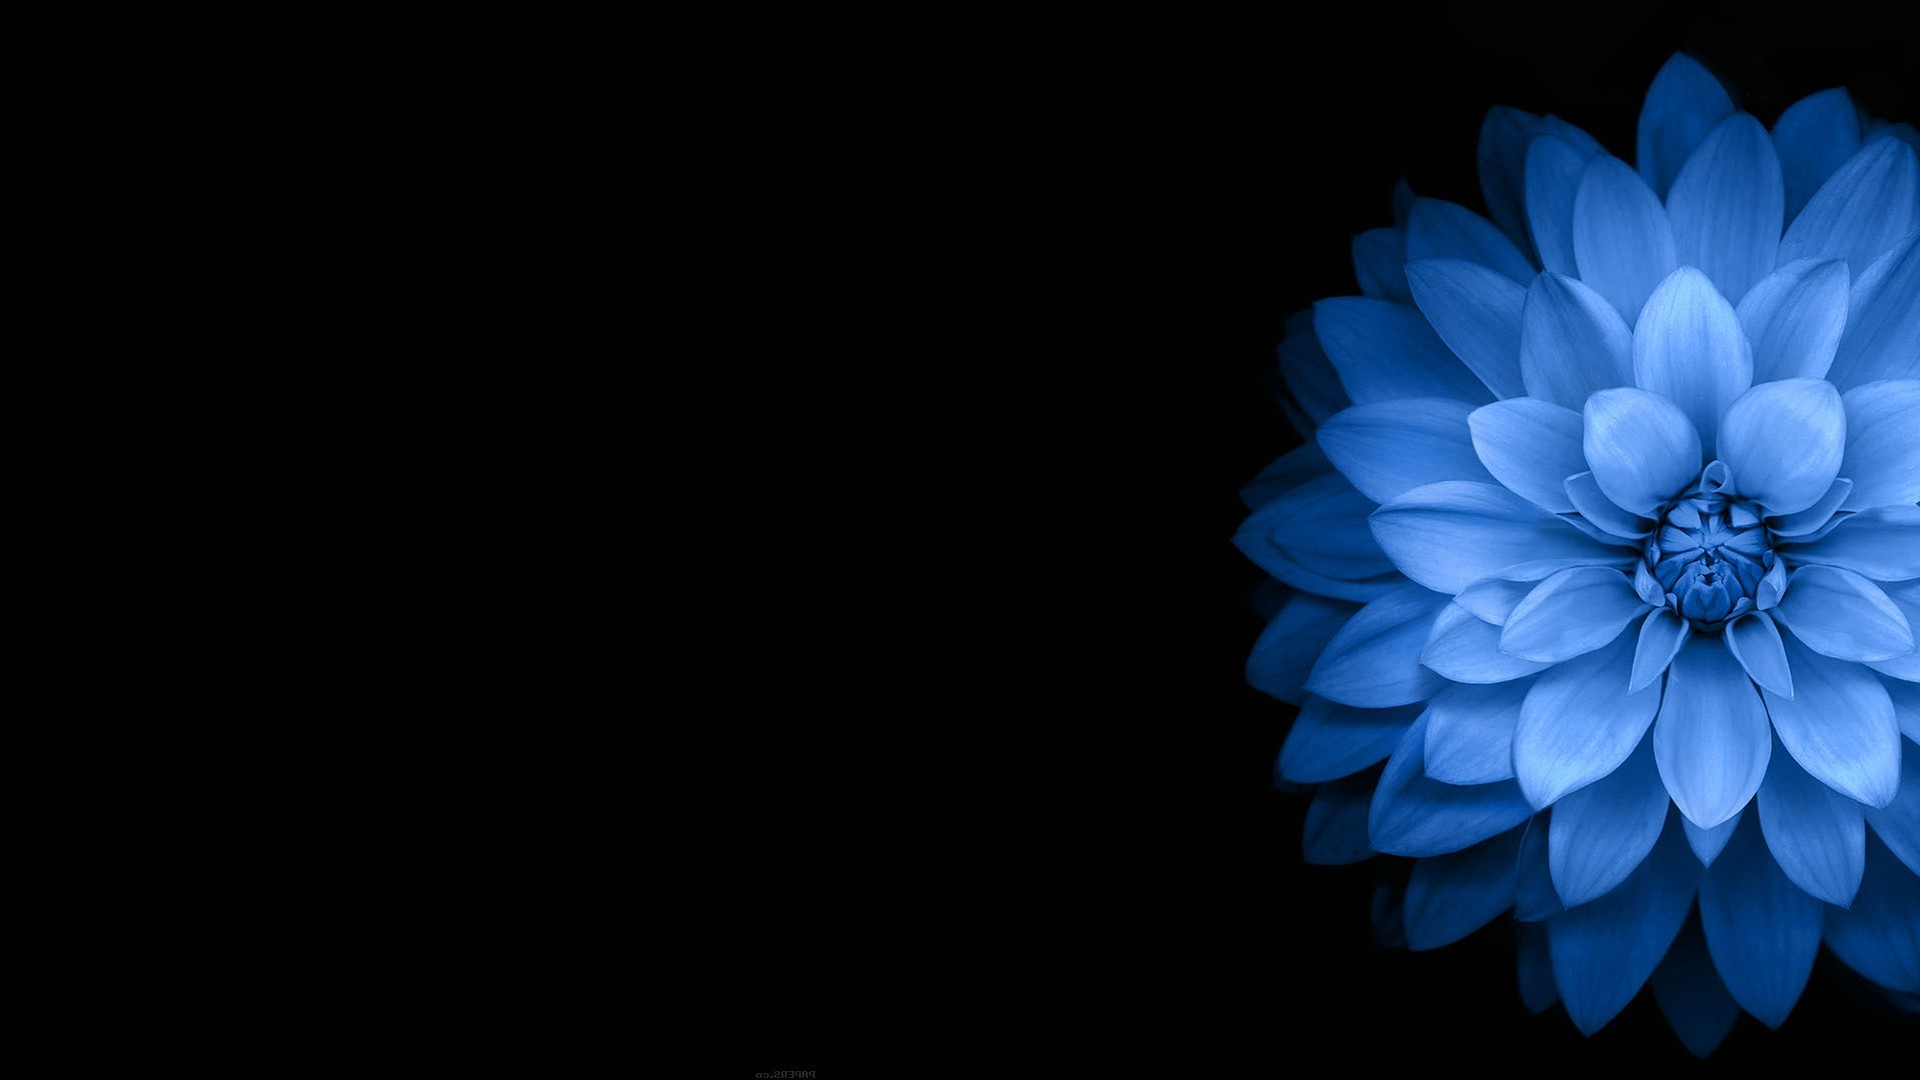 blue flowers background 49 images